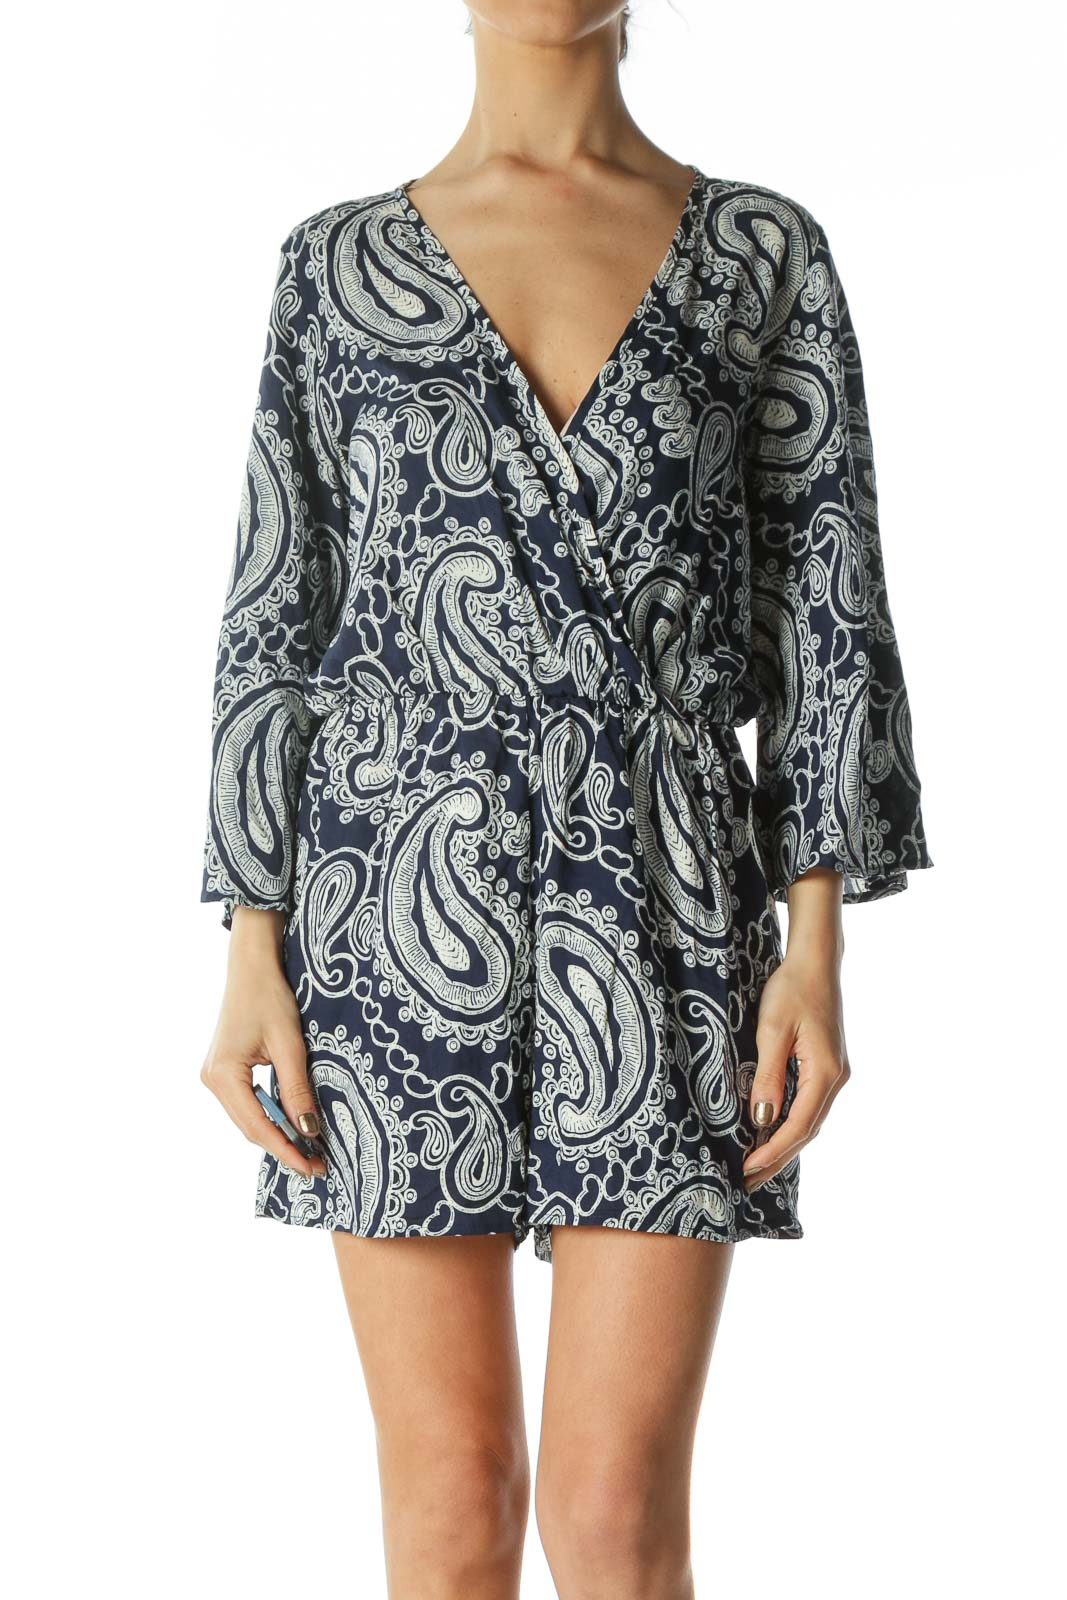 Navy Blue and White Patterned Romper with Bell Sleeves